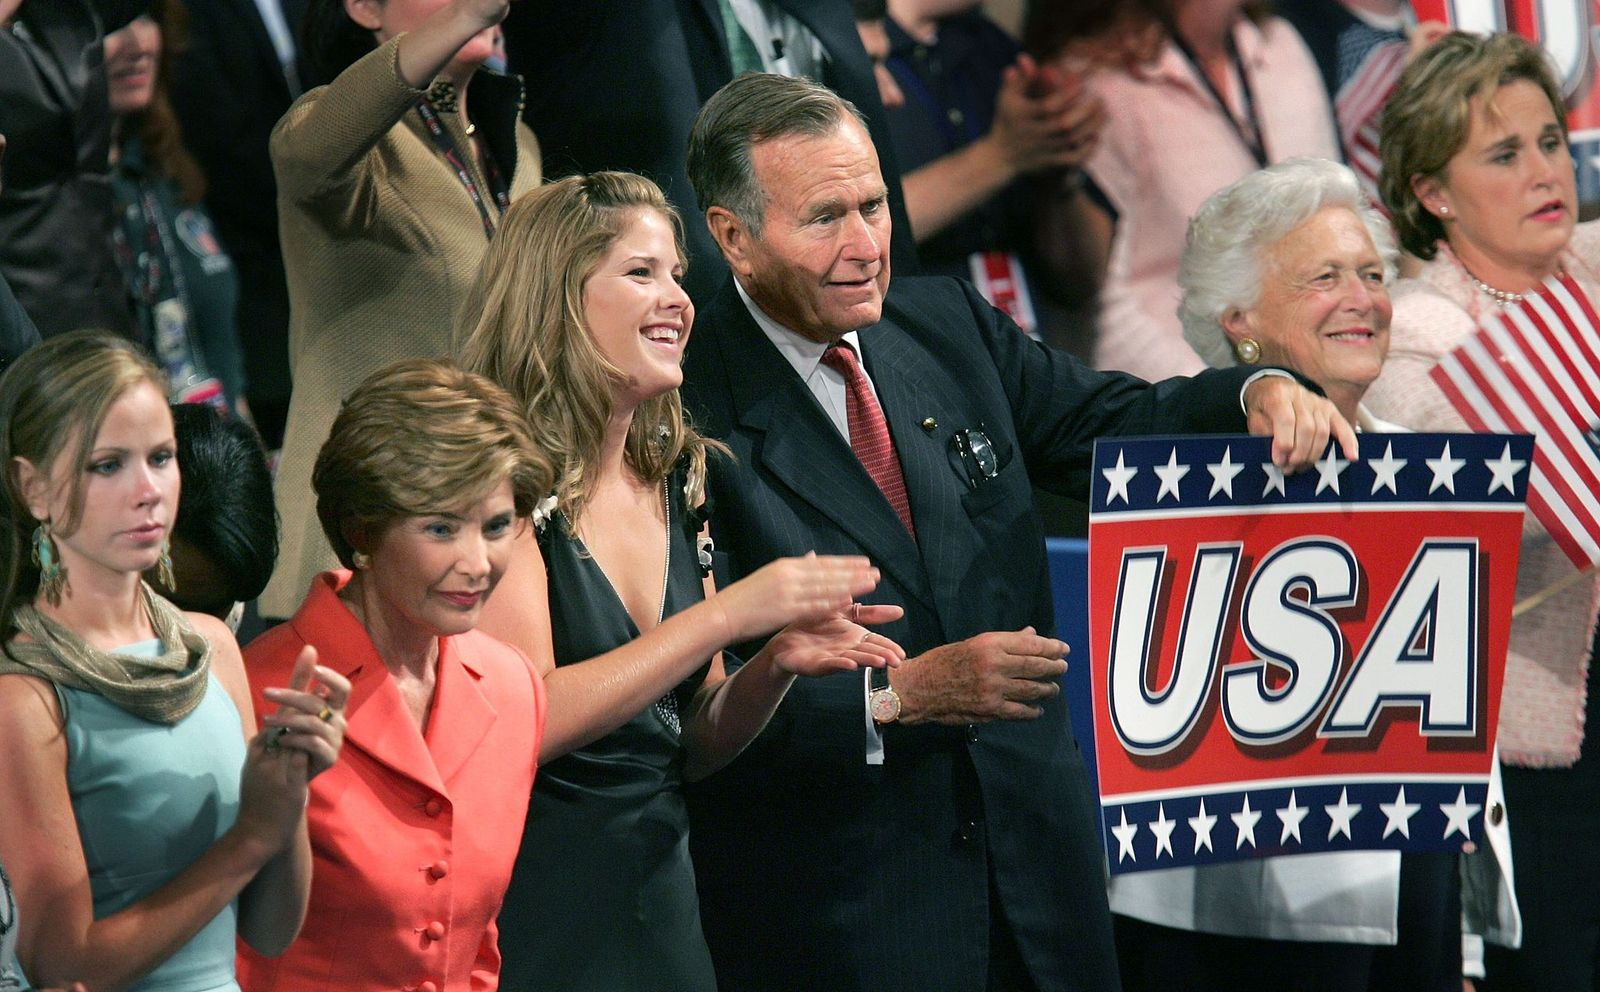 U.S. President George W. Bush's and his family on the final night of the Republican National Convention September 2, 2004 | Photo: Getty Images